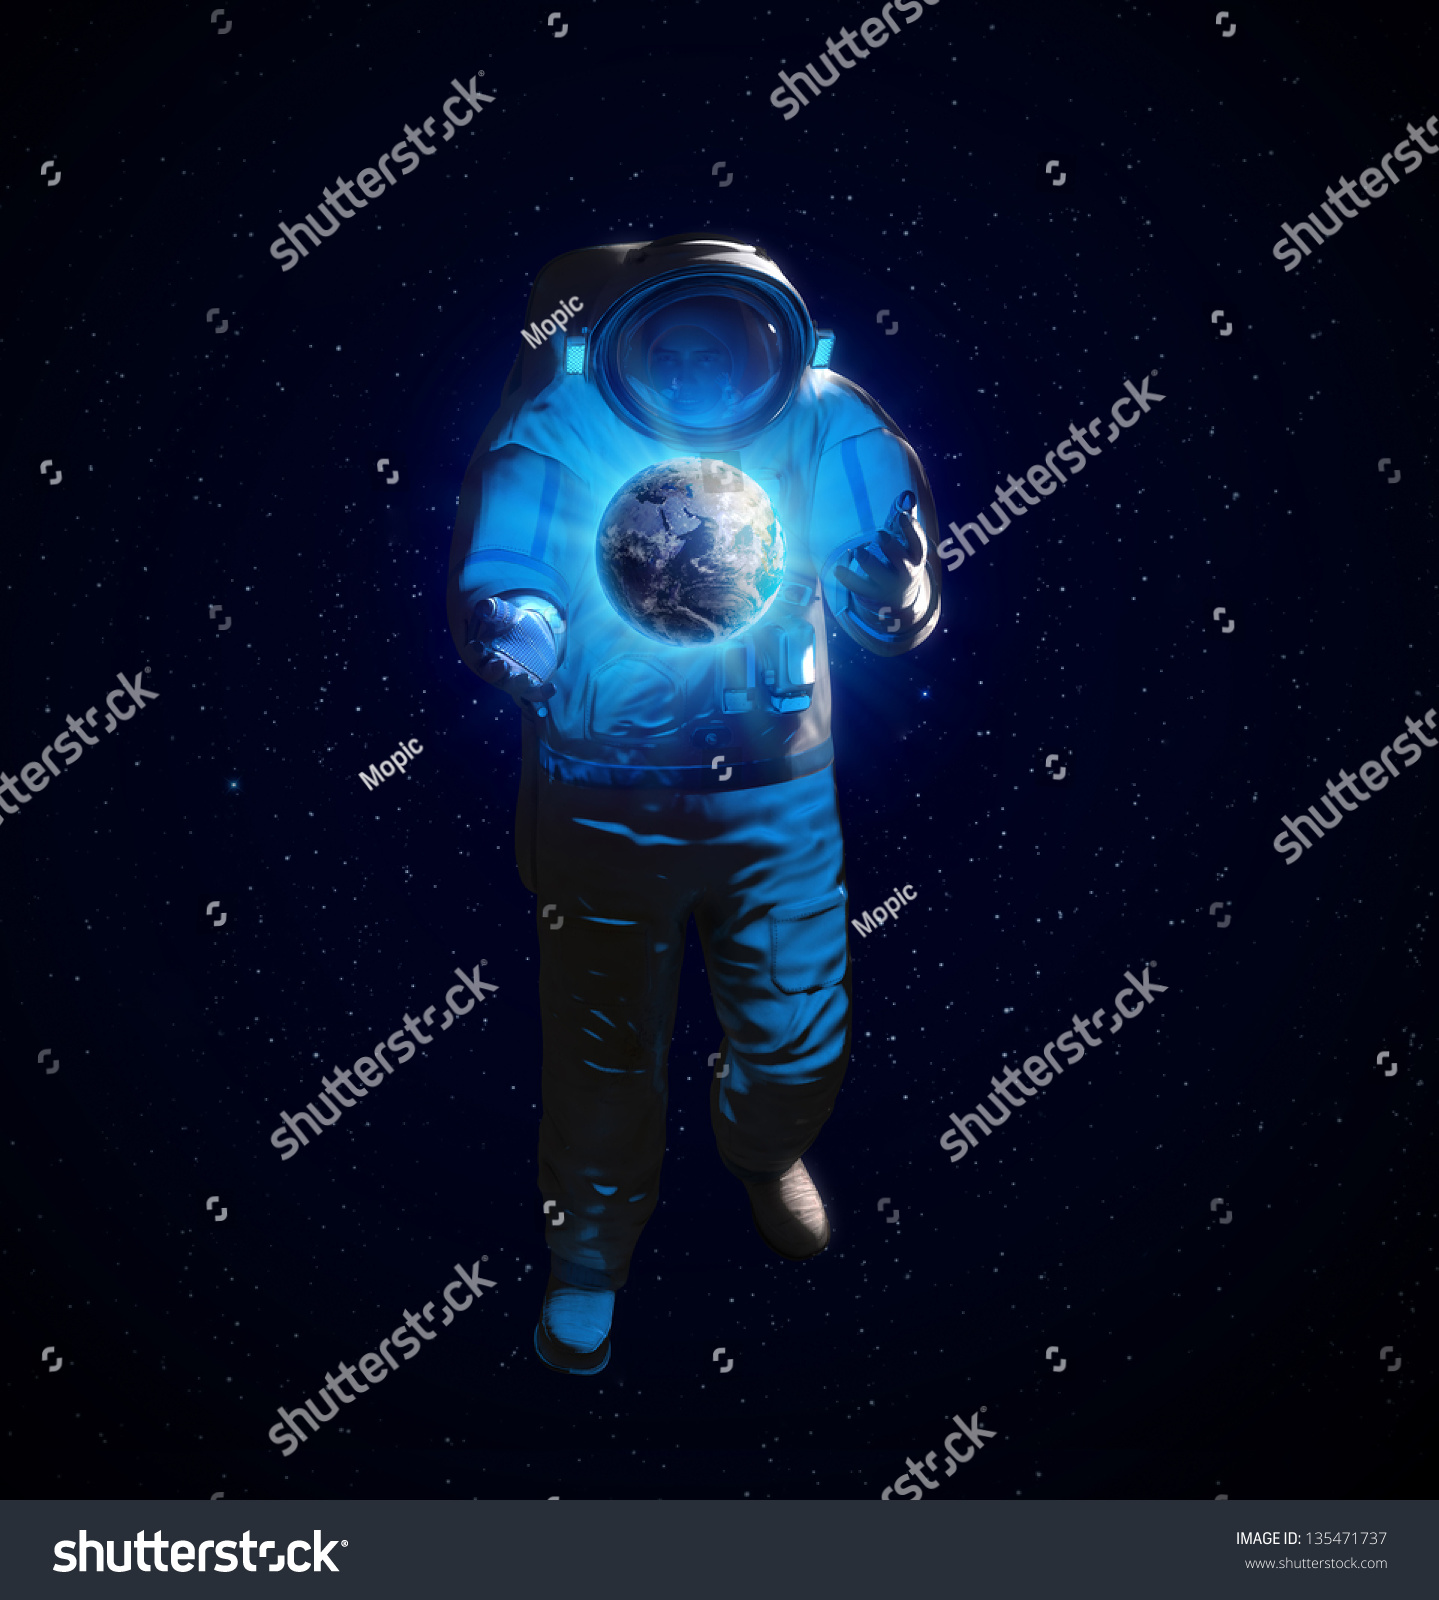 astronauts in space weightless - photo #42